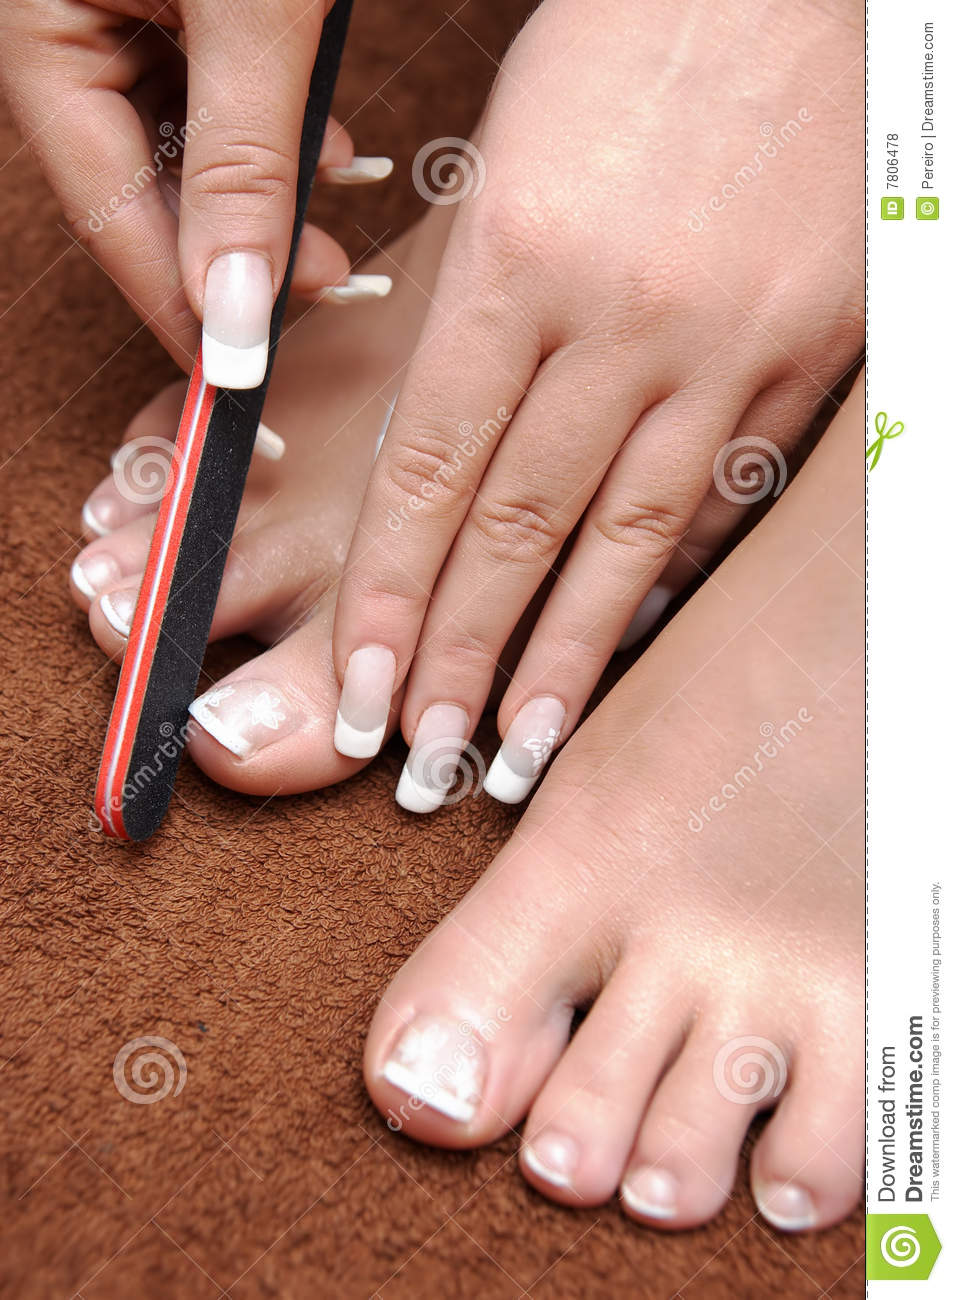 Pedicure set up royalty free stock photos image 7806478 for How to renew old nail polish